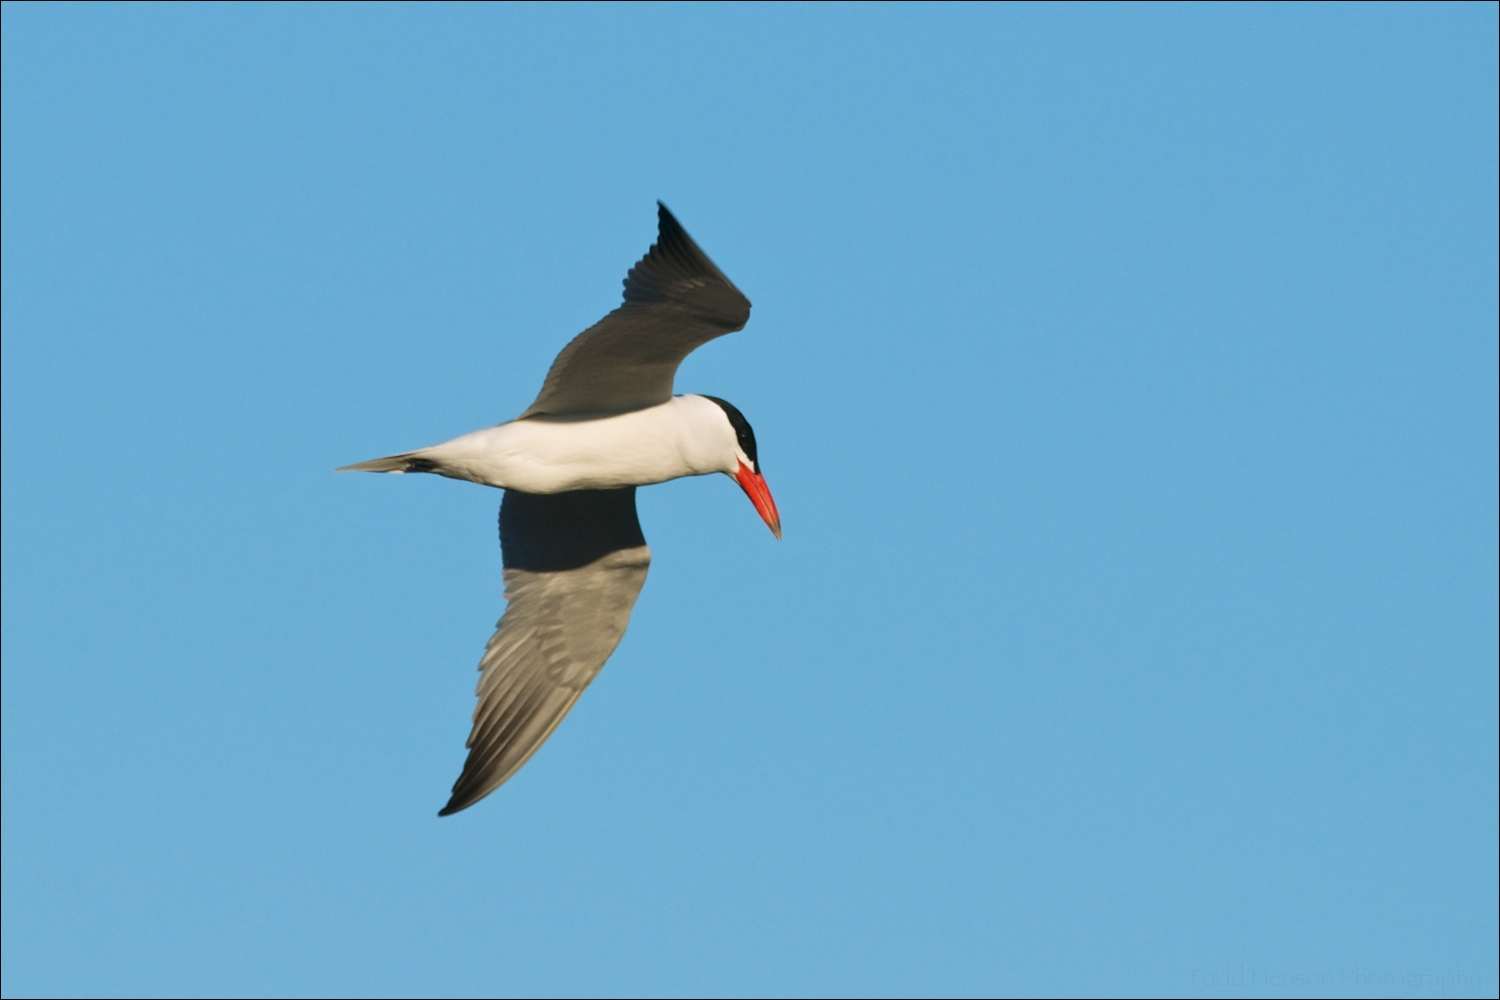 Caspian Tern showing off its white underside and the gray wings that darken to black near the tips.